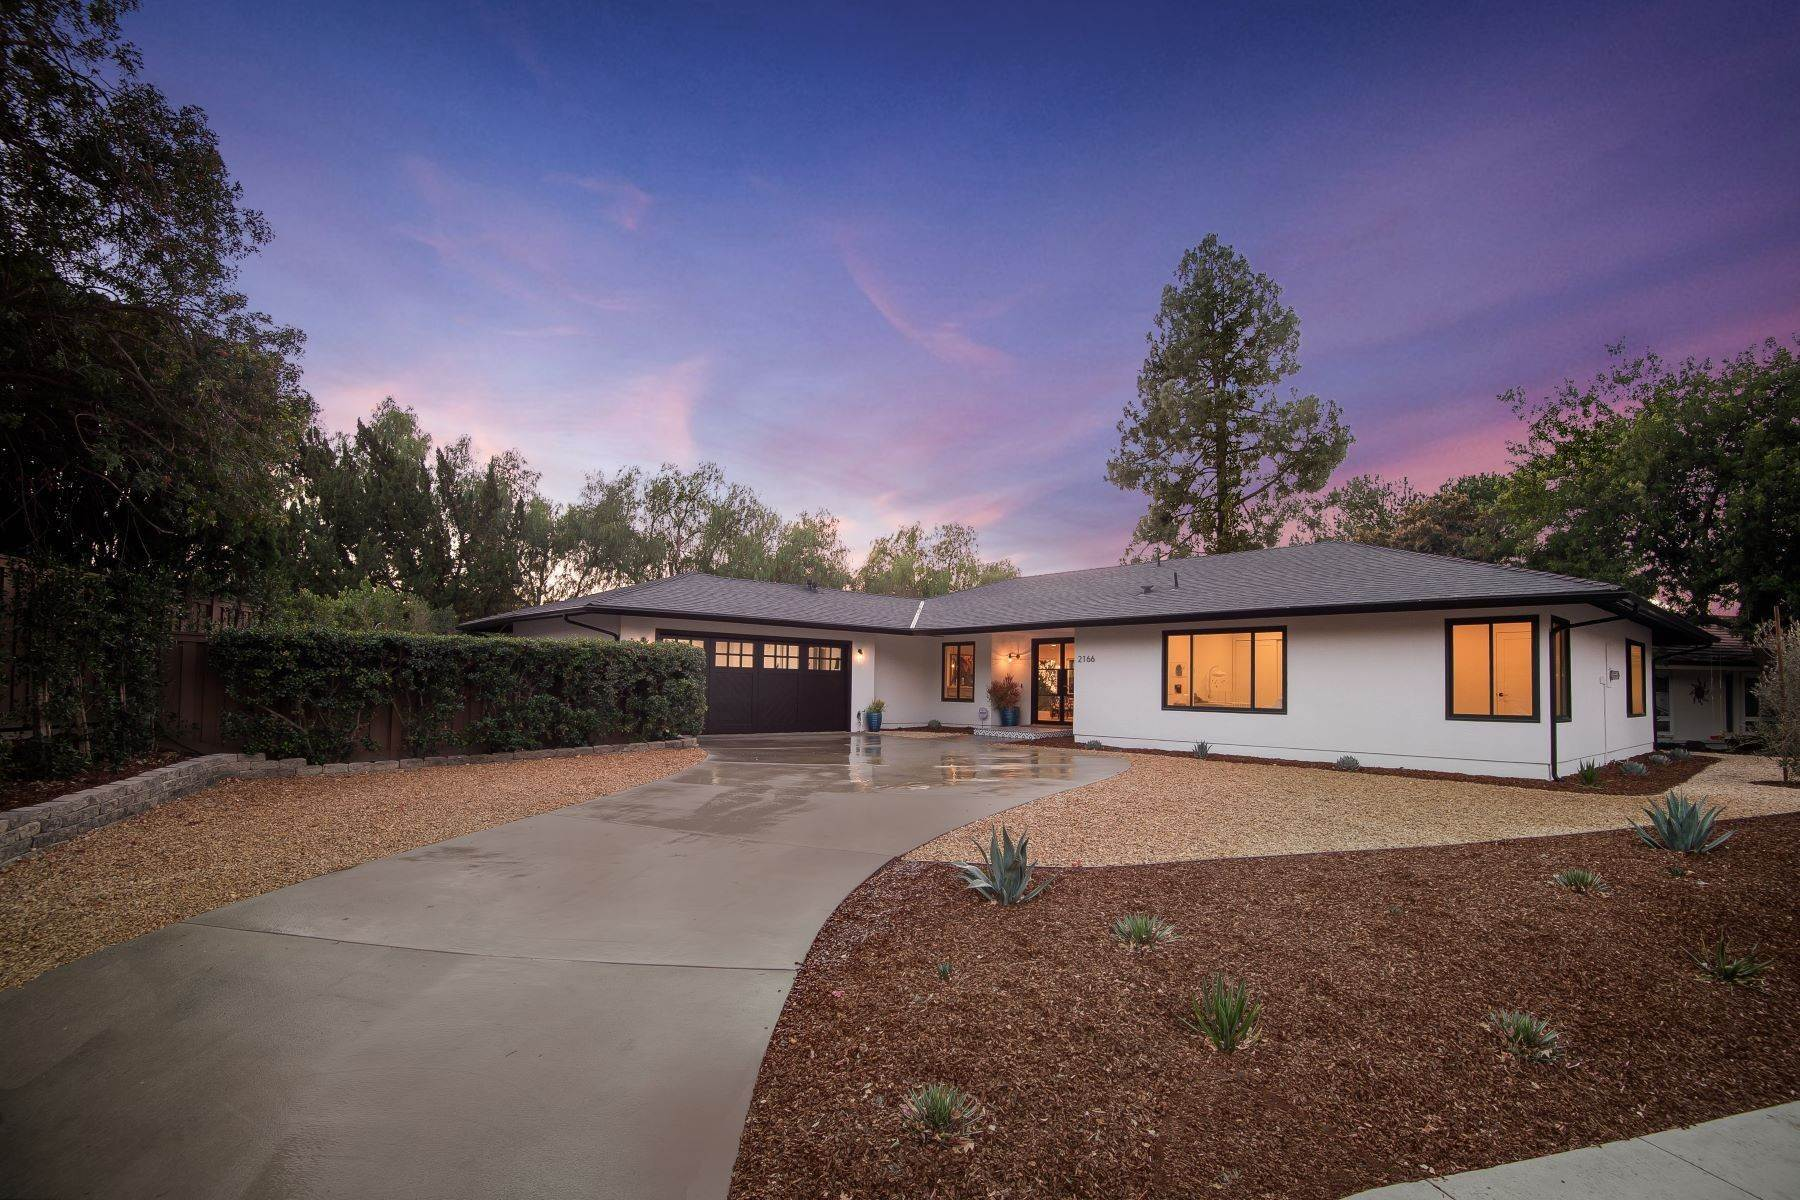 Single Family Homes for Sale at Chic and Contemporary 2166 La Granada Drive Thousand Oaks, California 91362 United States